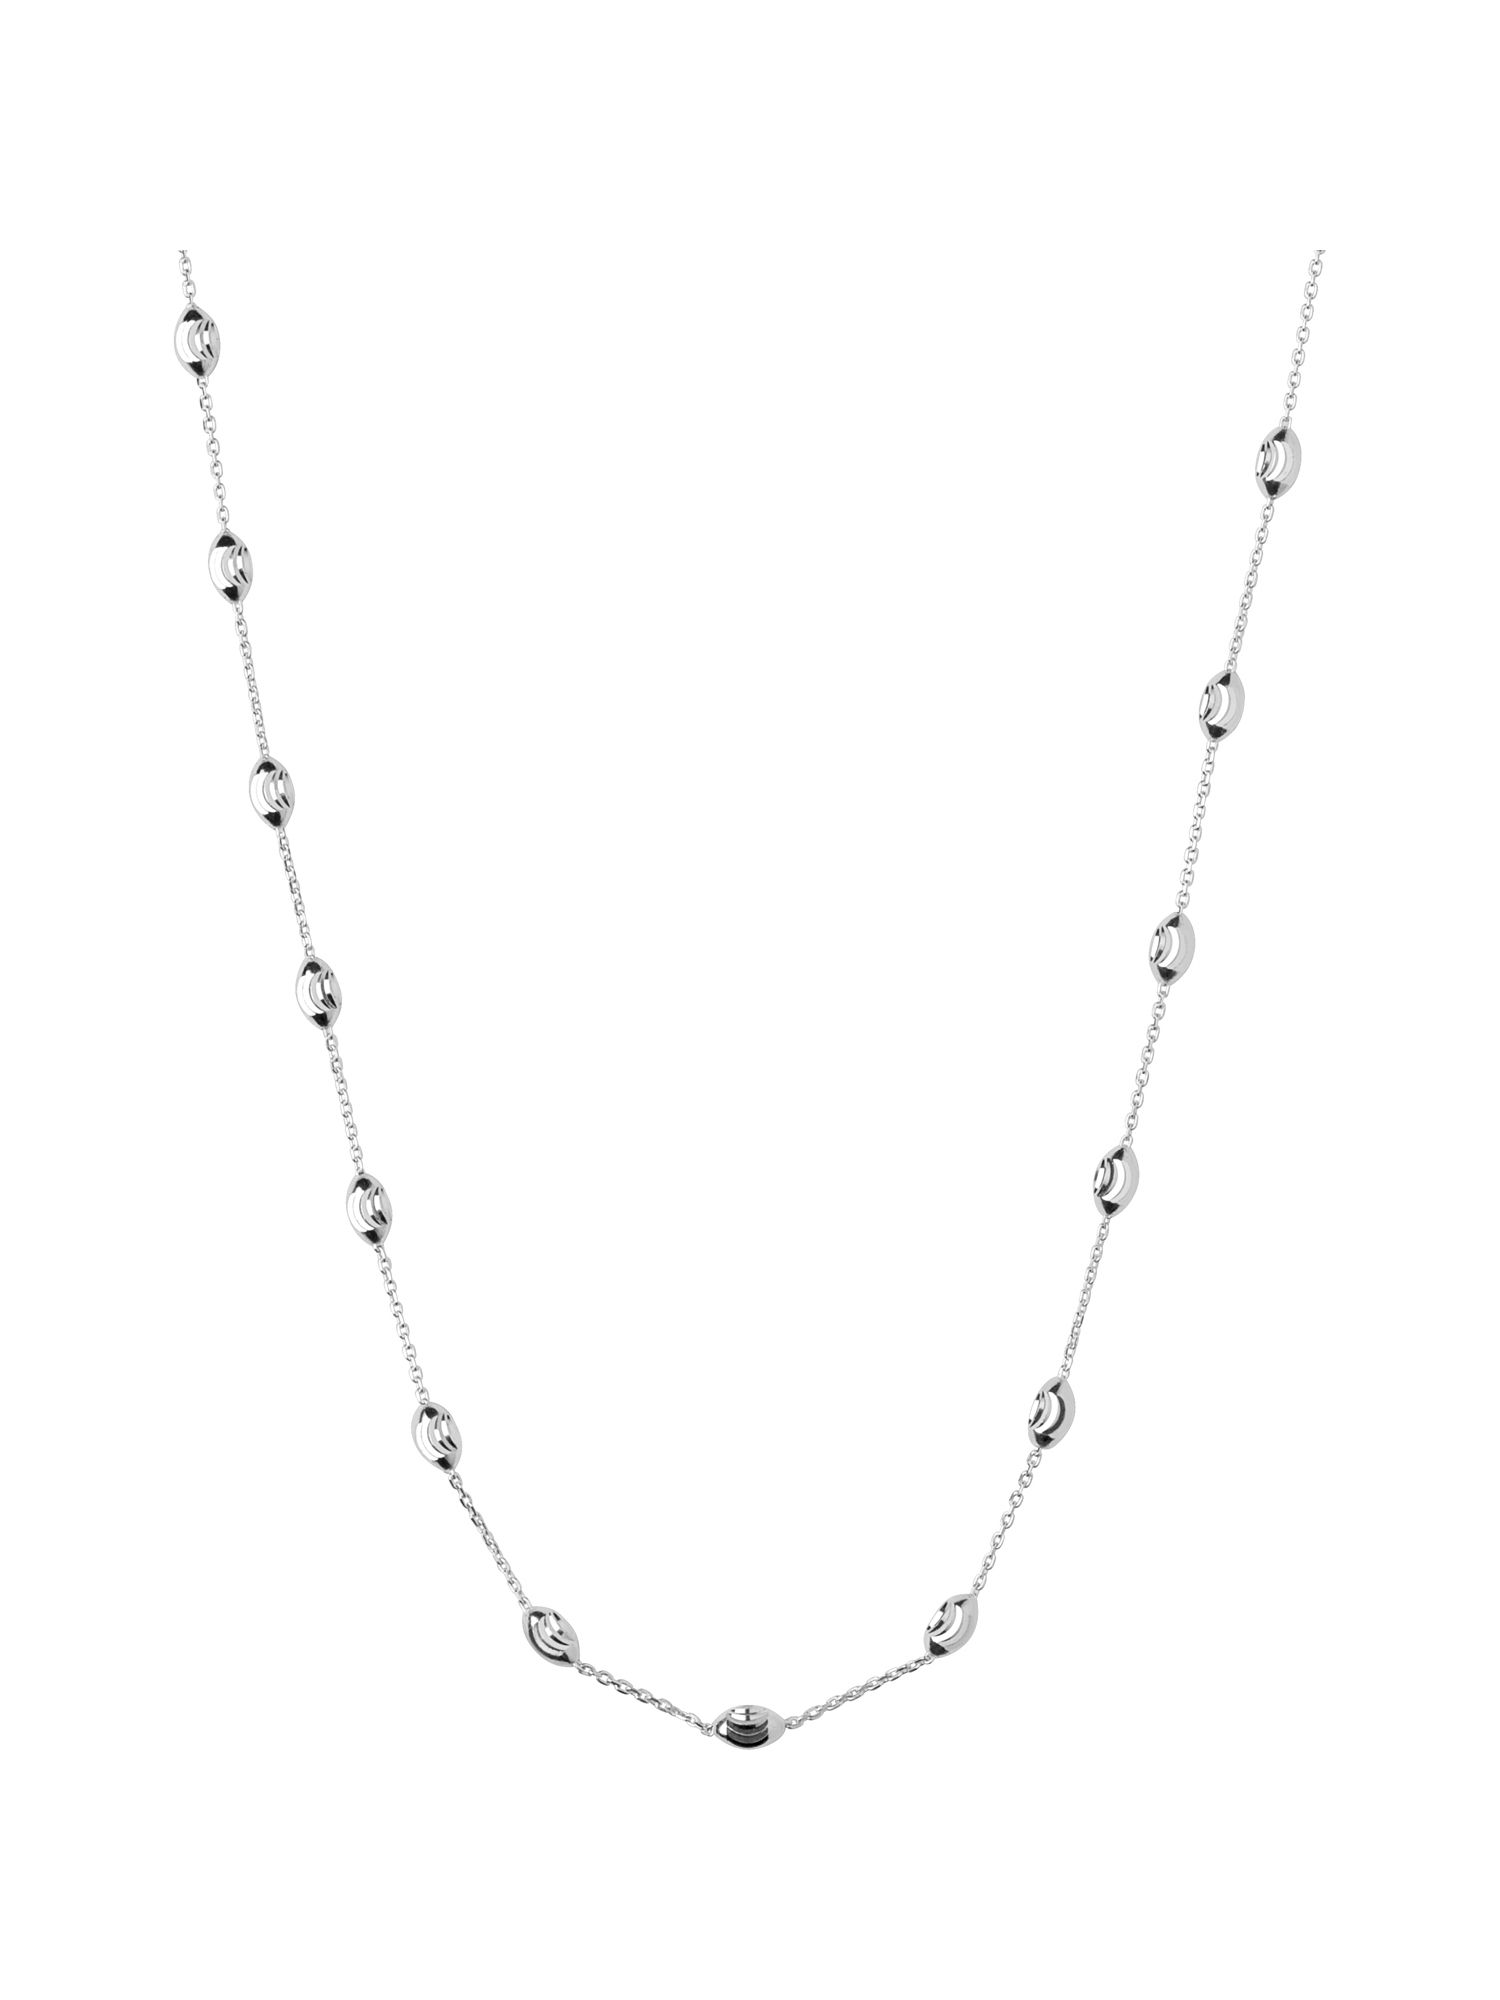 Beaded chain necklace 45cm